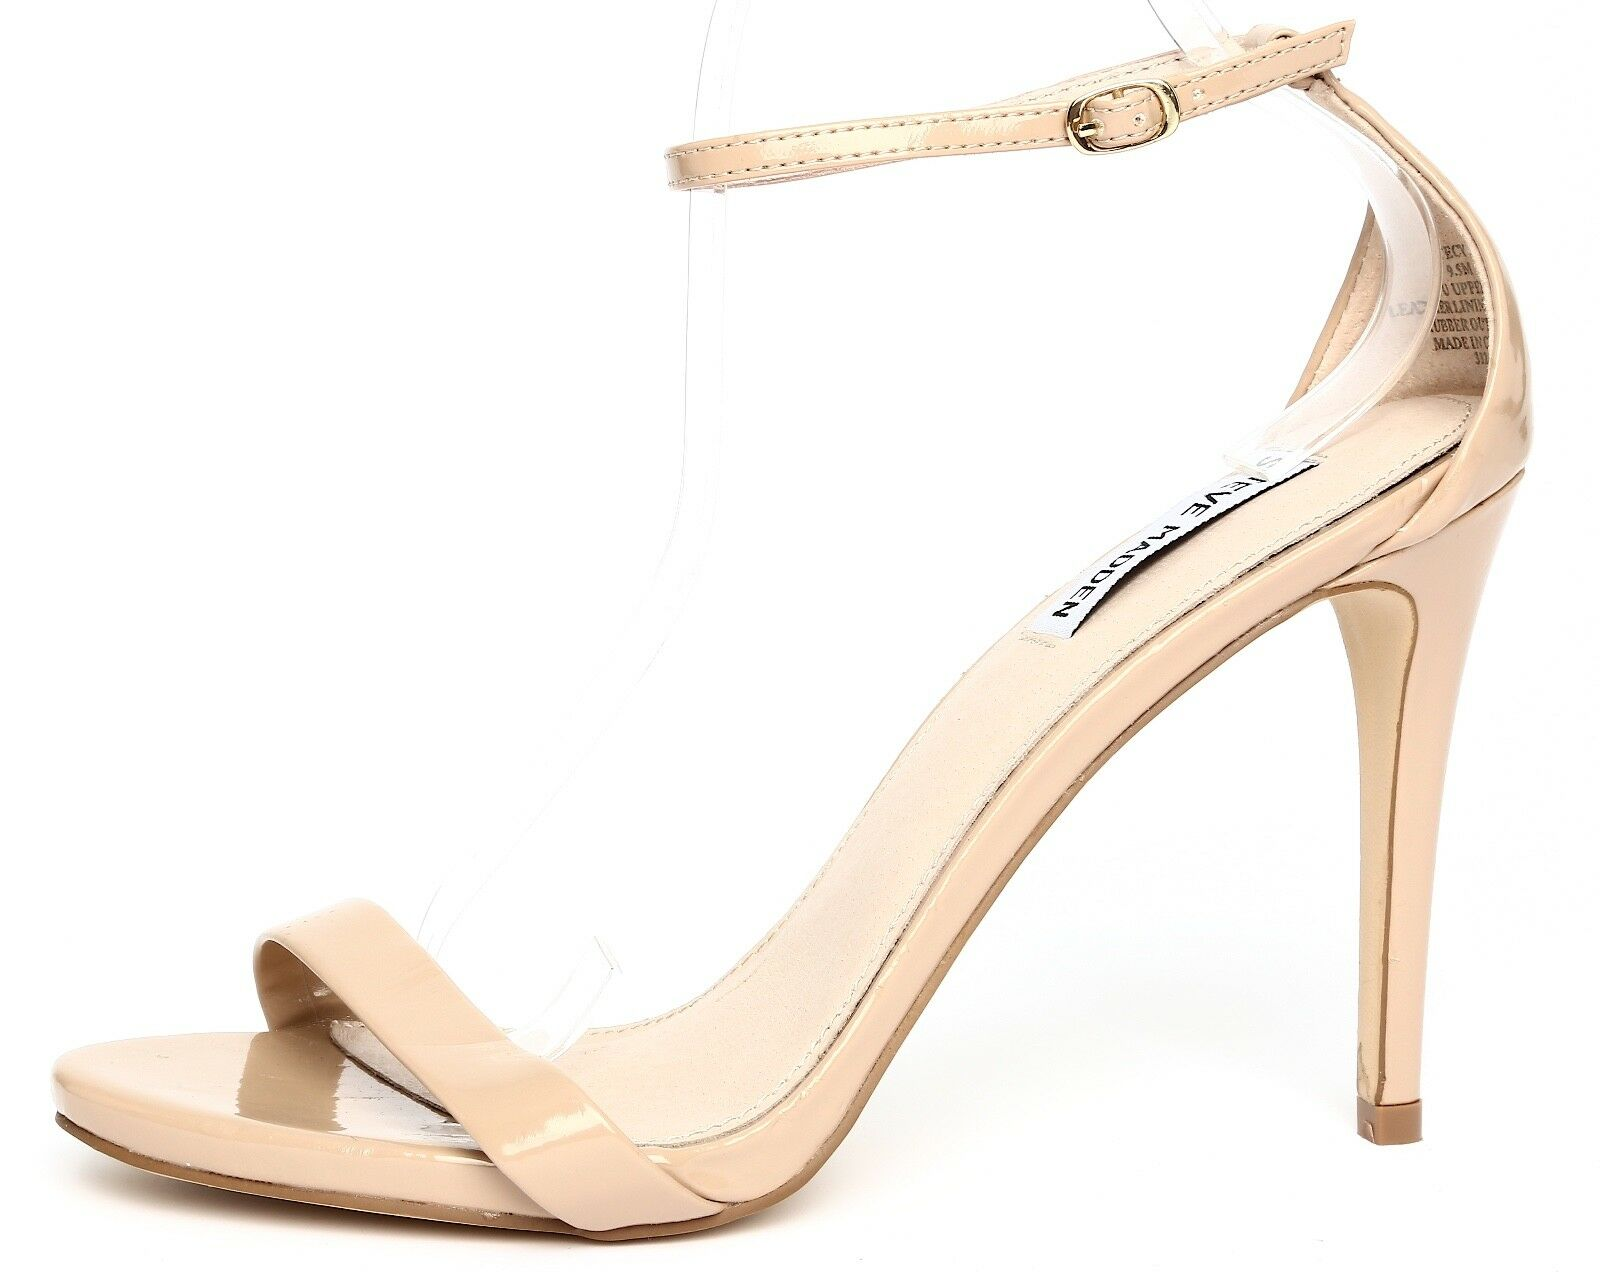 a buon mercato Steve Madden Stecy Patent Patent Patent Leather Nude Ankle Strap Sandal Heels Sz 9.5M 4337  100% autentico